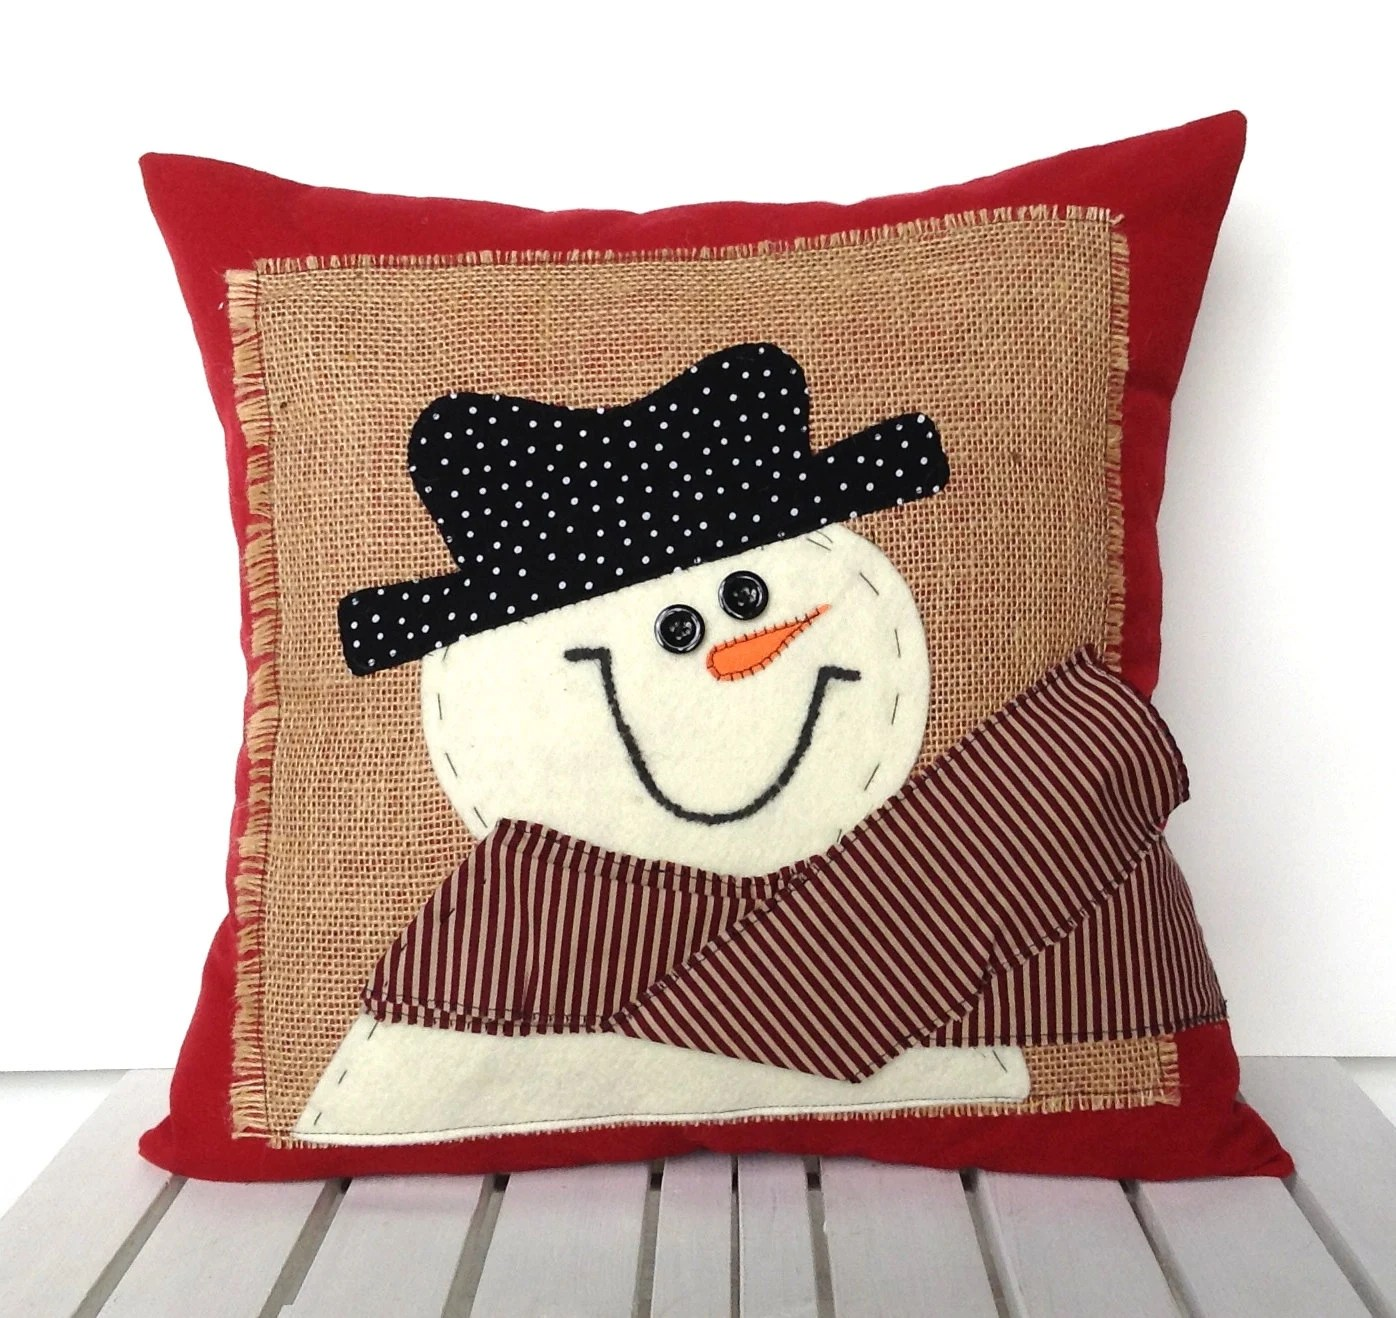 Cushion Covers Christmas Snowman Christmas Pillow Cover Holiday Pillow Decorative